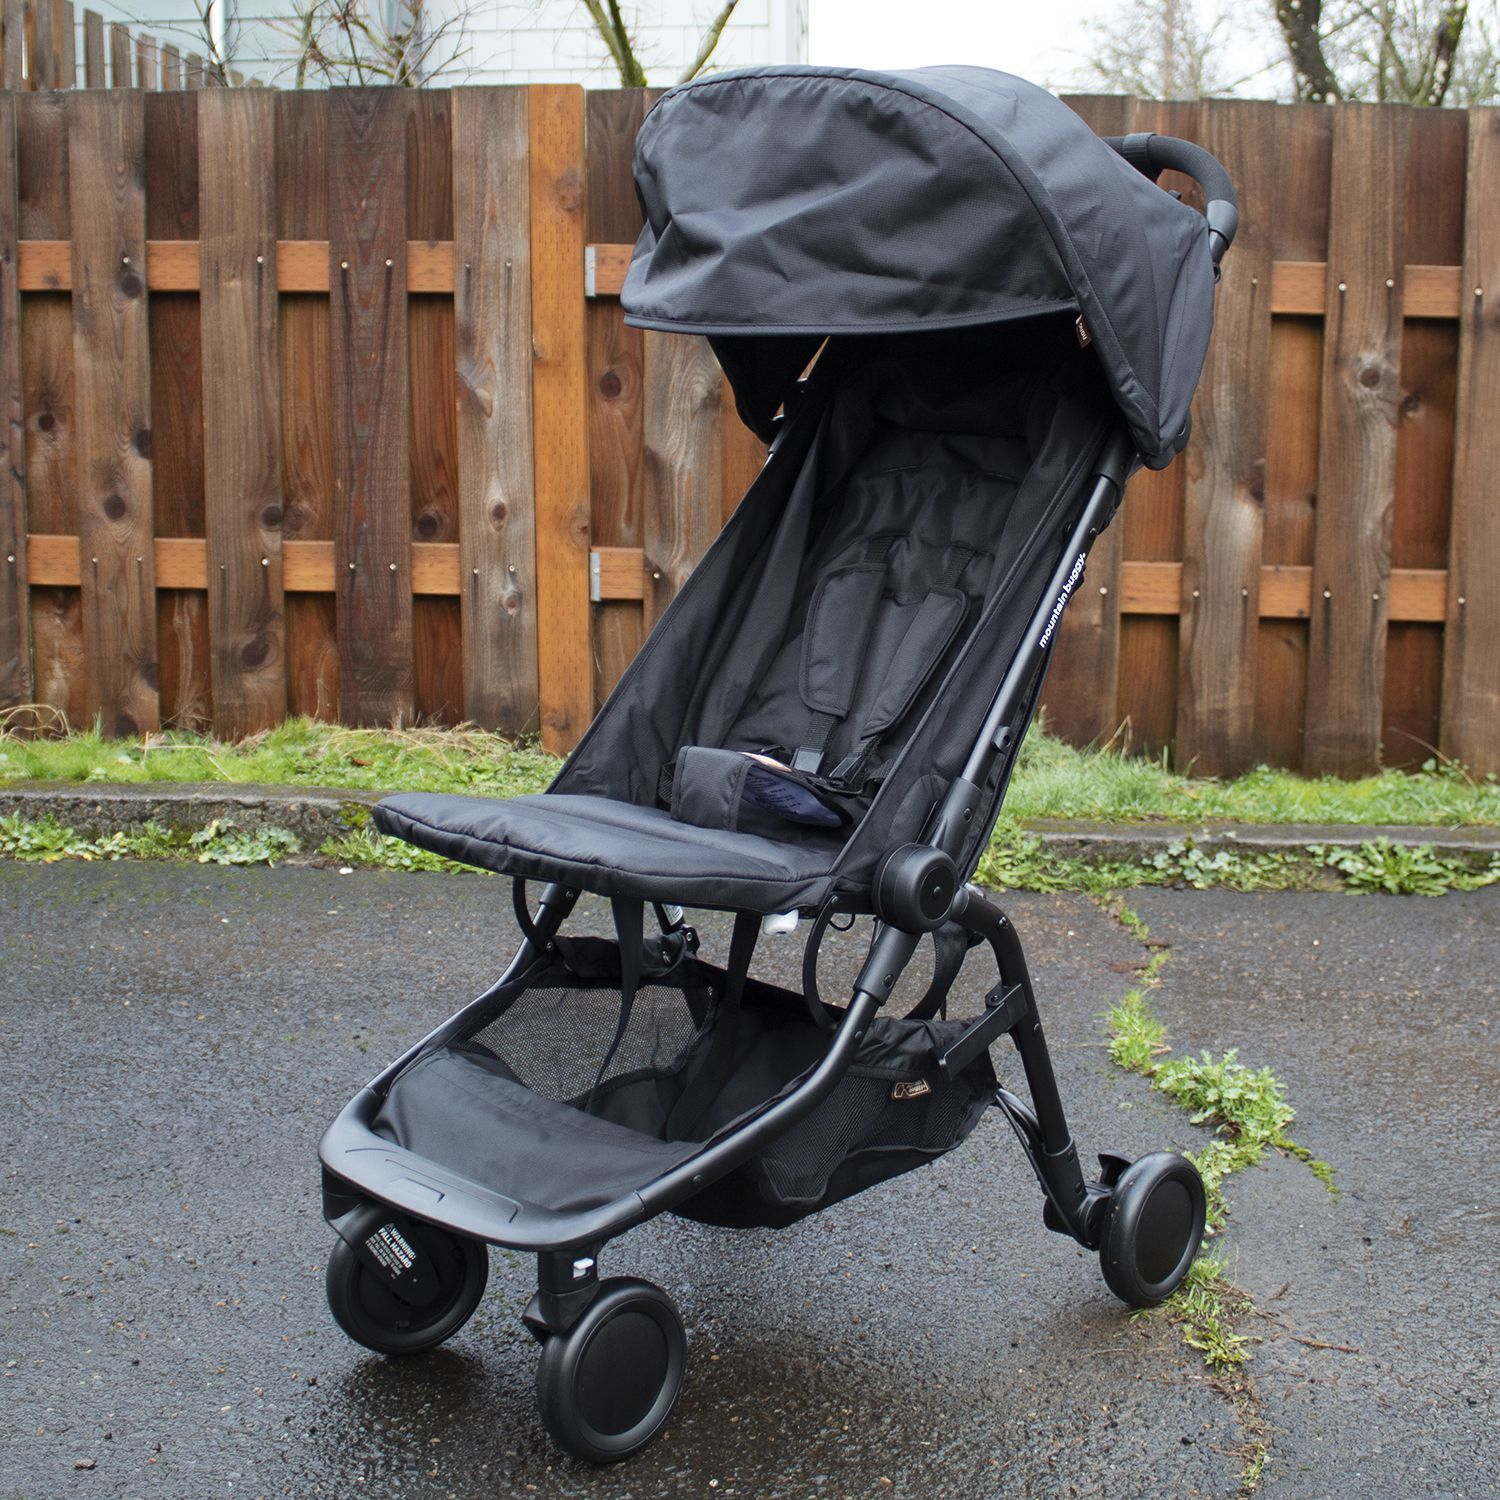 Mountain Buggy Nano Travel Stroller Review A Must Have